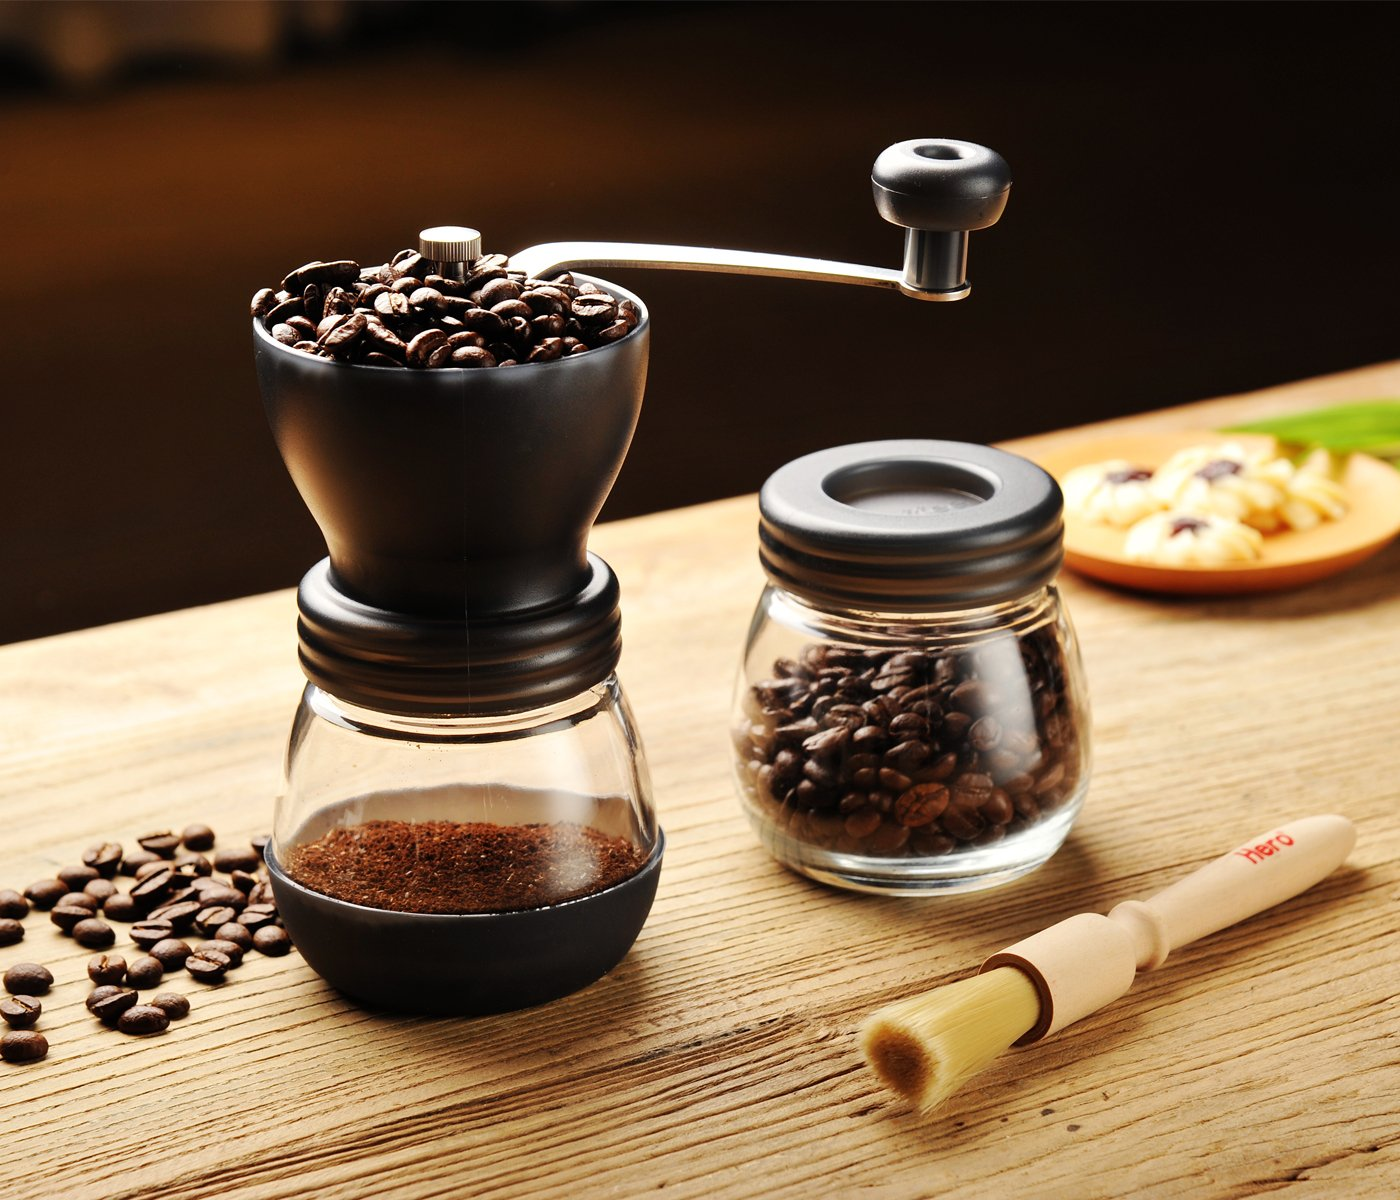 Hero Manual Coffee Grinder-Conical Ceramic Burr Mill,Adjustable Hand Precision Brewing, Black by Hero (Image #6)